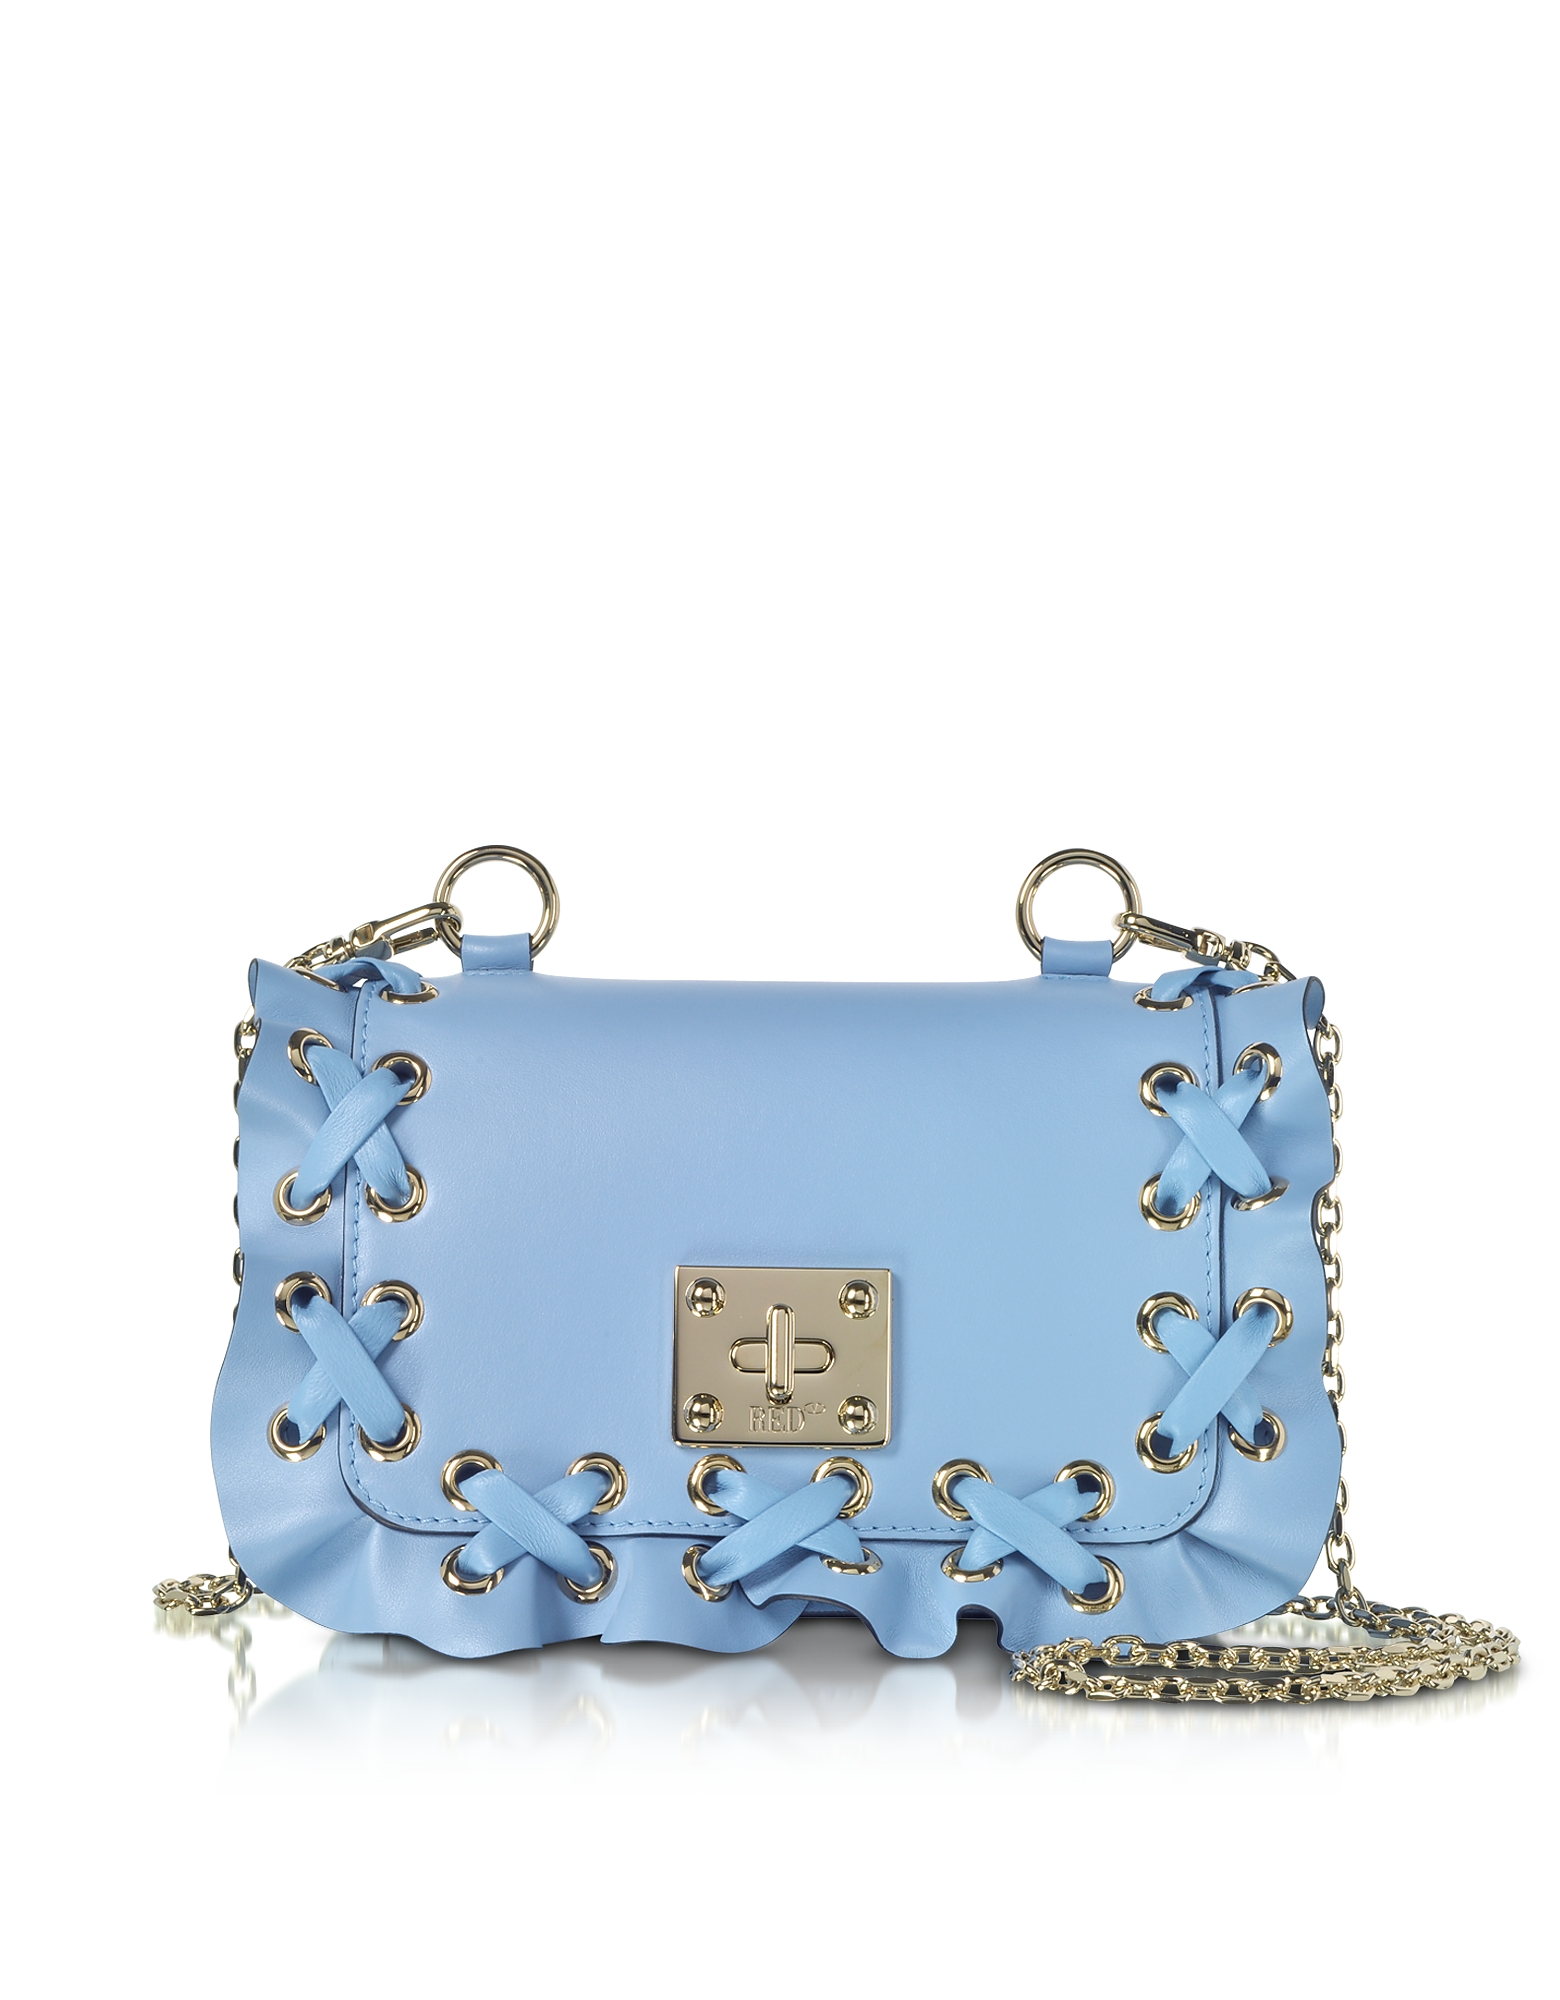 RED Valentino Handbags, Rock Ruffles Small Shoulder Bag